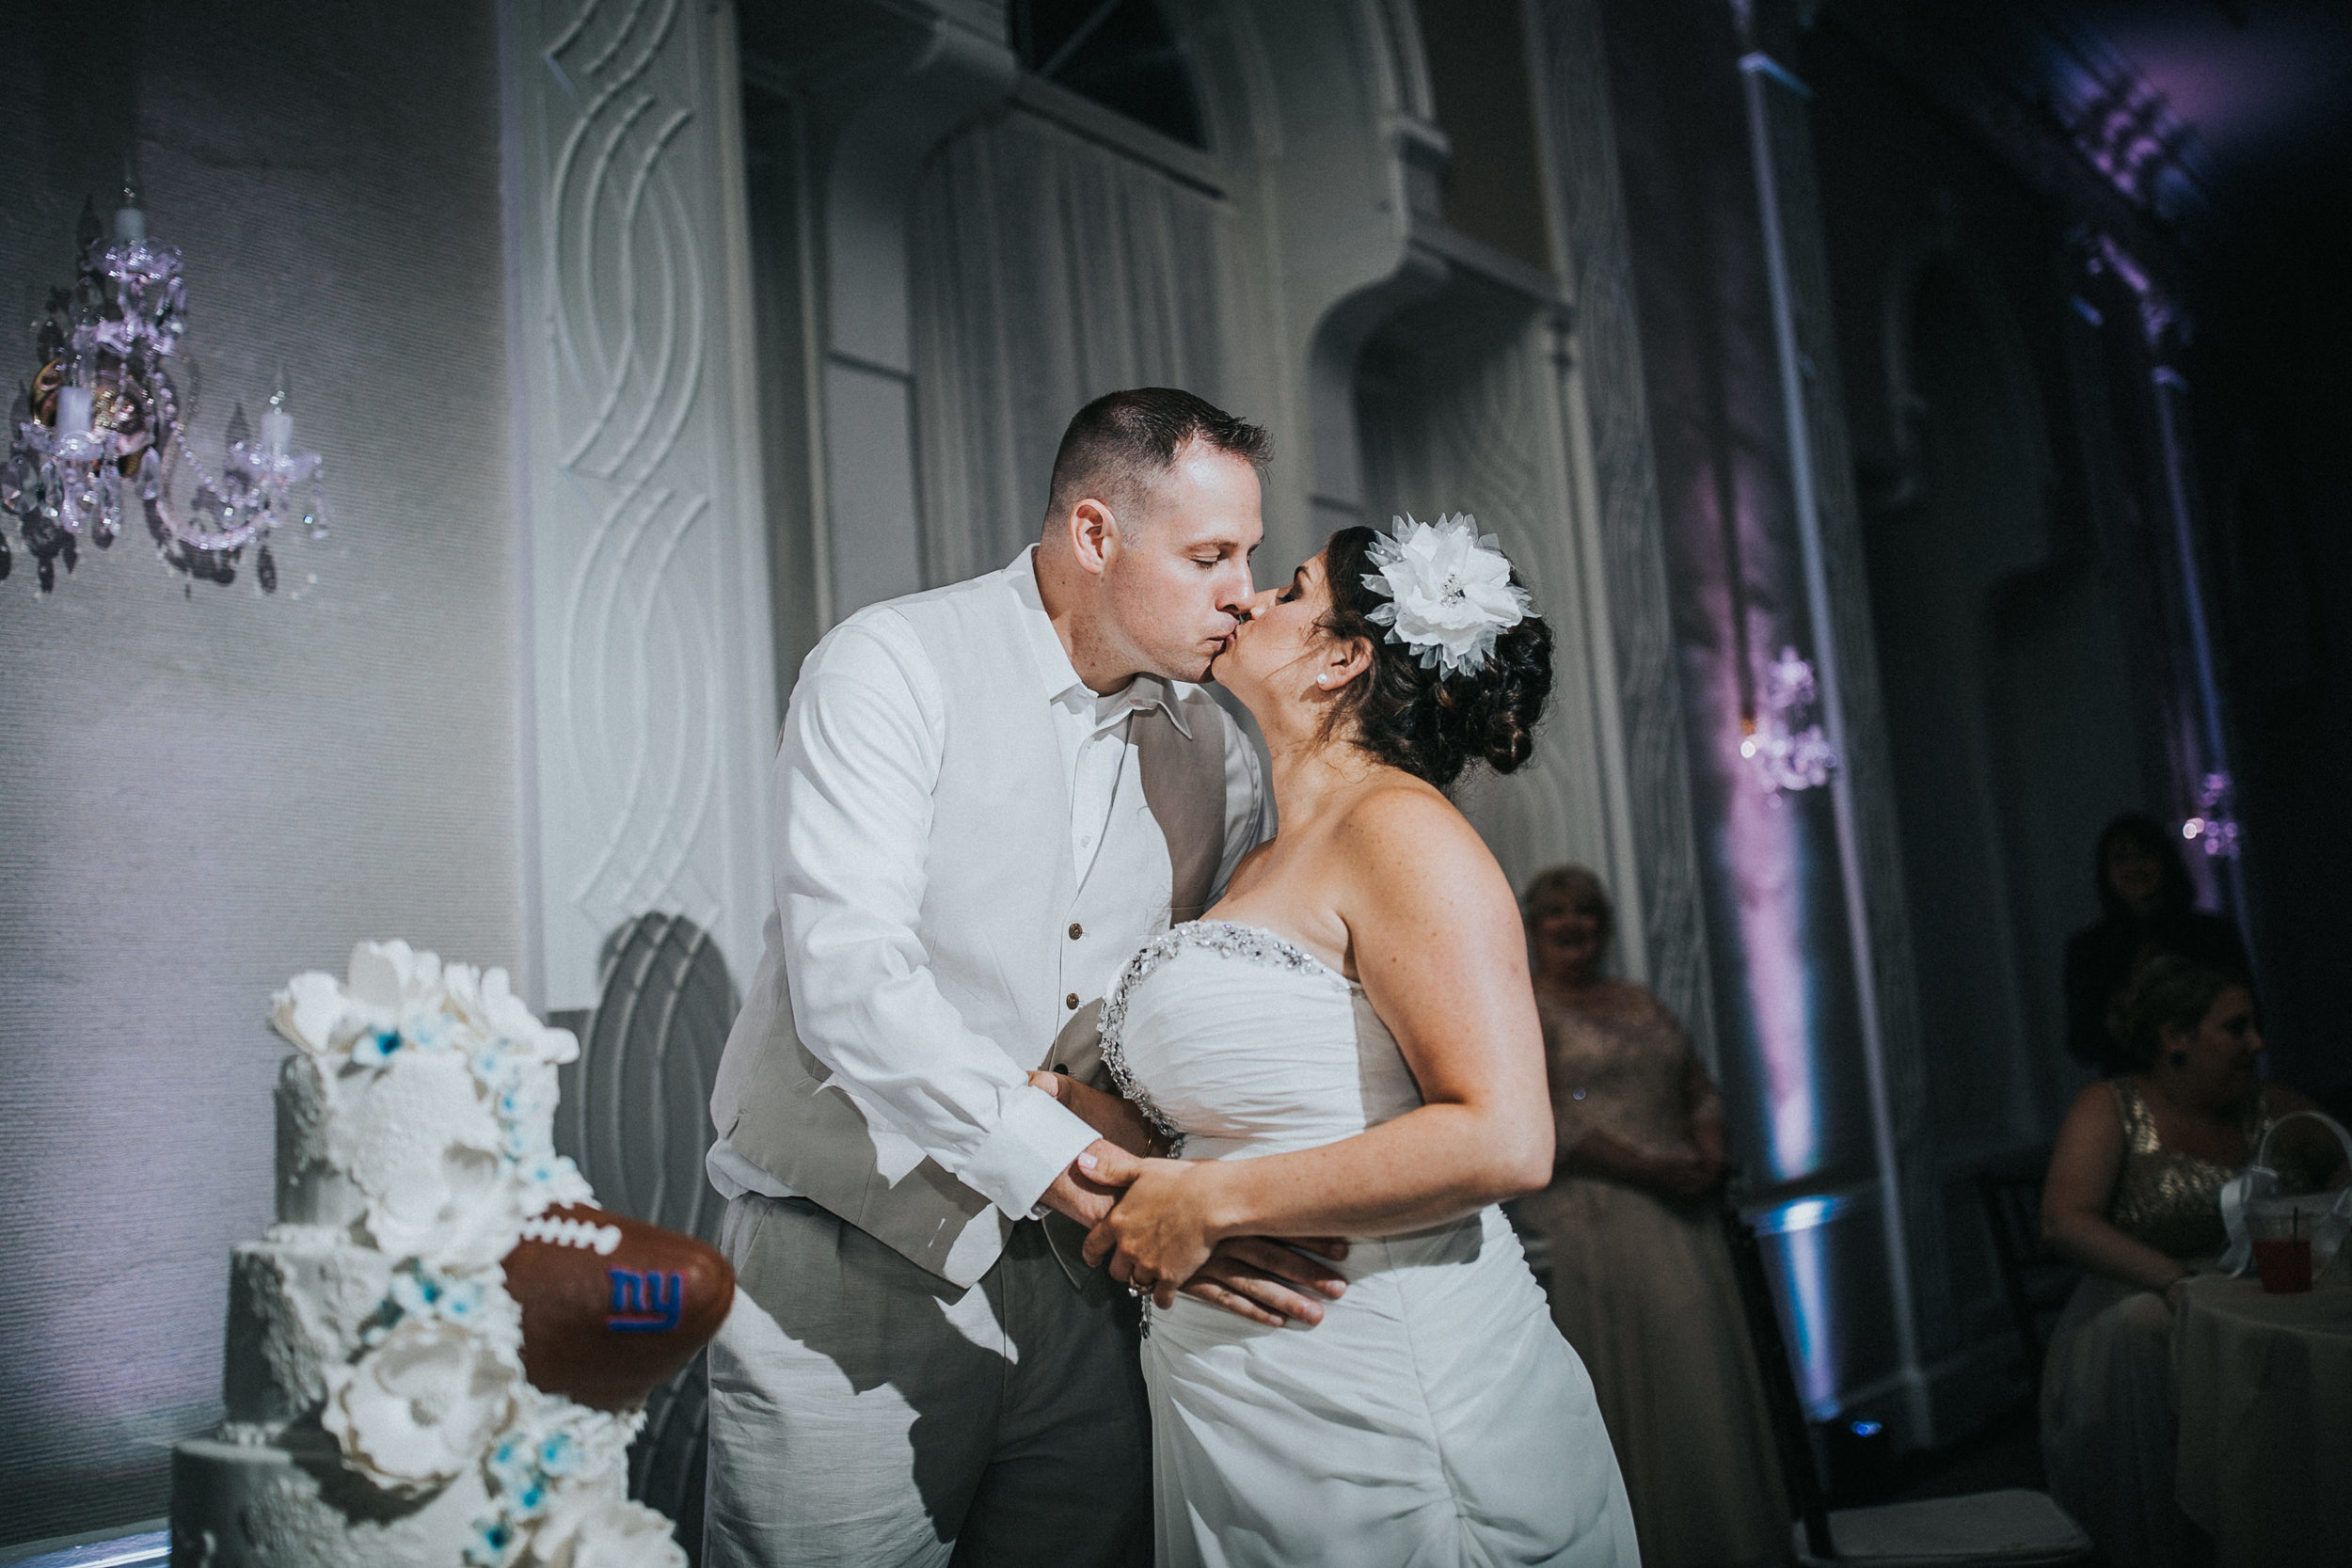 JennaLynnPhotography-NJWeddingPhotographer-Wedding-TheBerkeley-AsburyPark-Allison&Michael-Reception-200.jpg